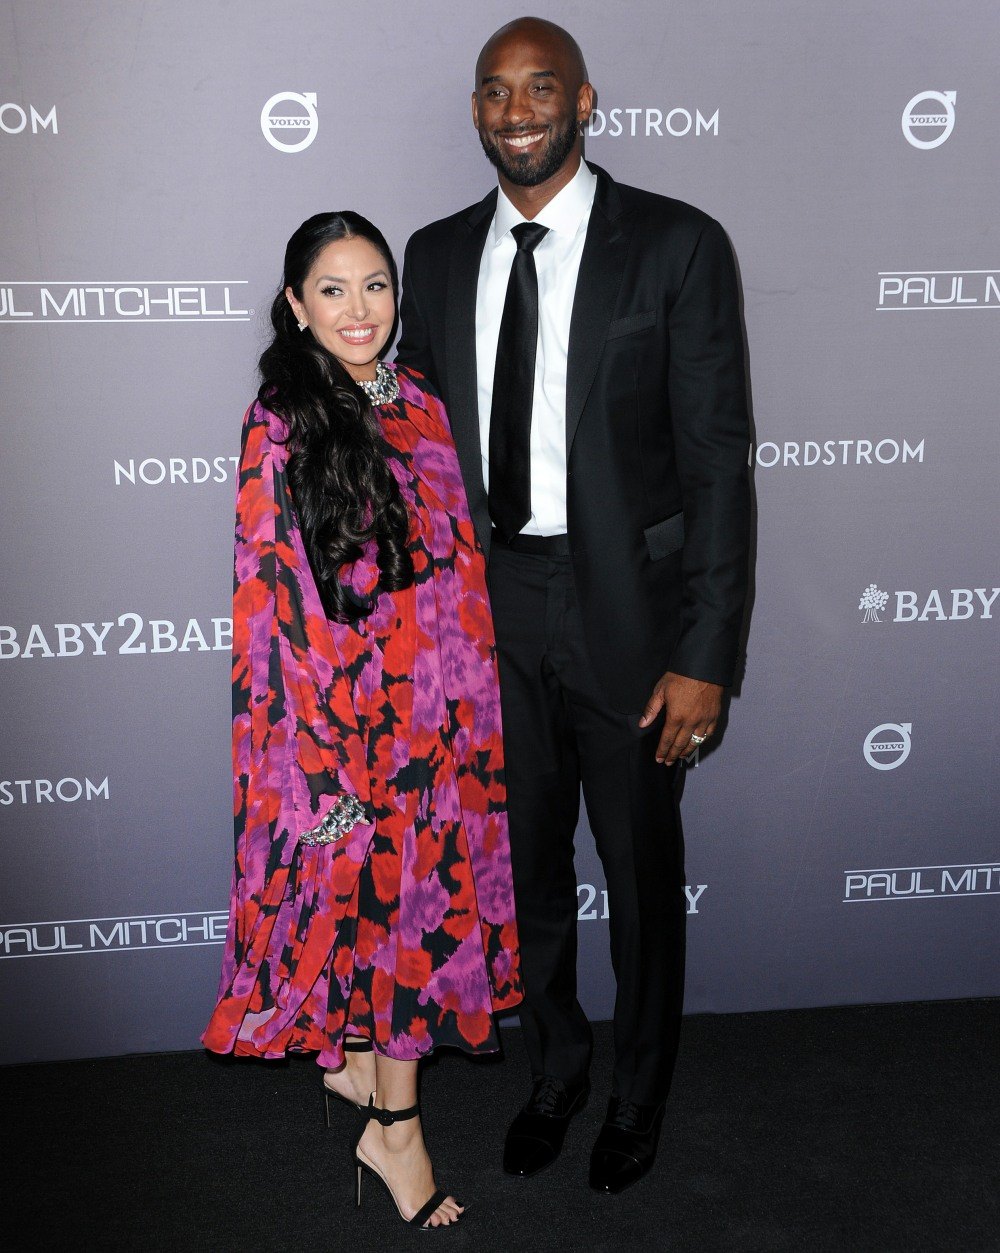 Vanessa Laine Bryant and Kobe Bryant at the 2019 Baby2Baby Gala Presented By Paul Mitchell held at the 3LABS in Culver City, USA on November 9, 2019.